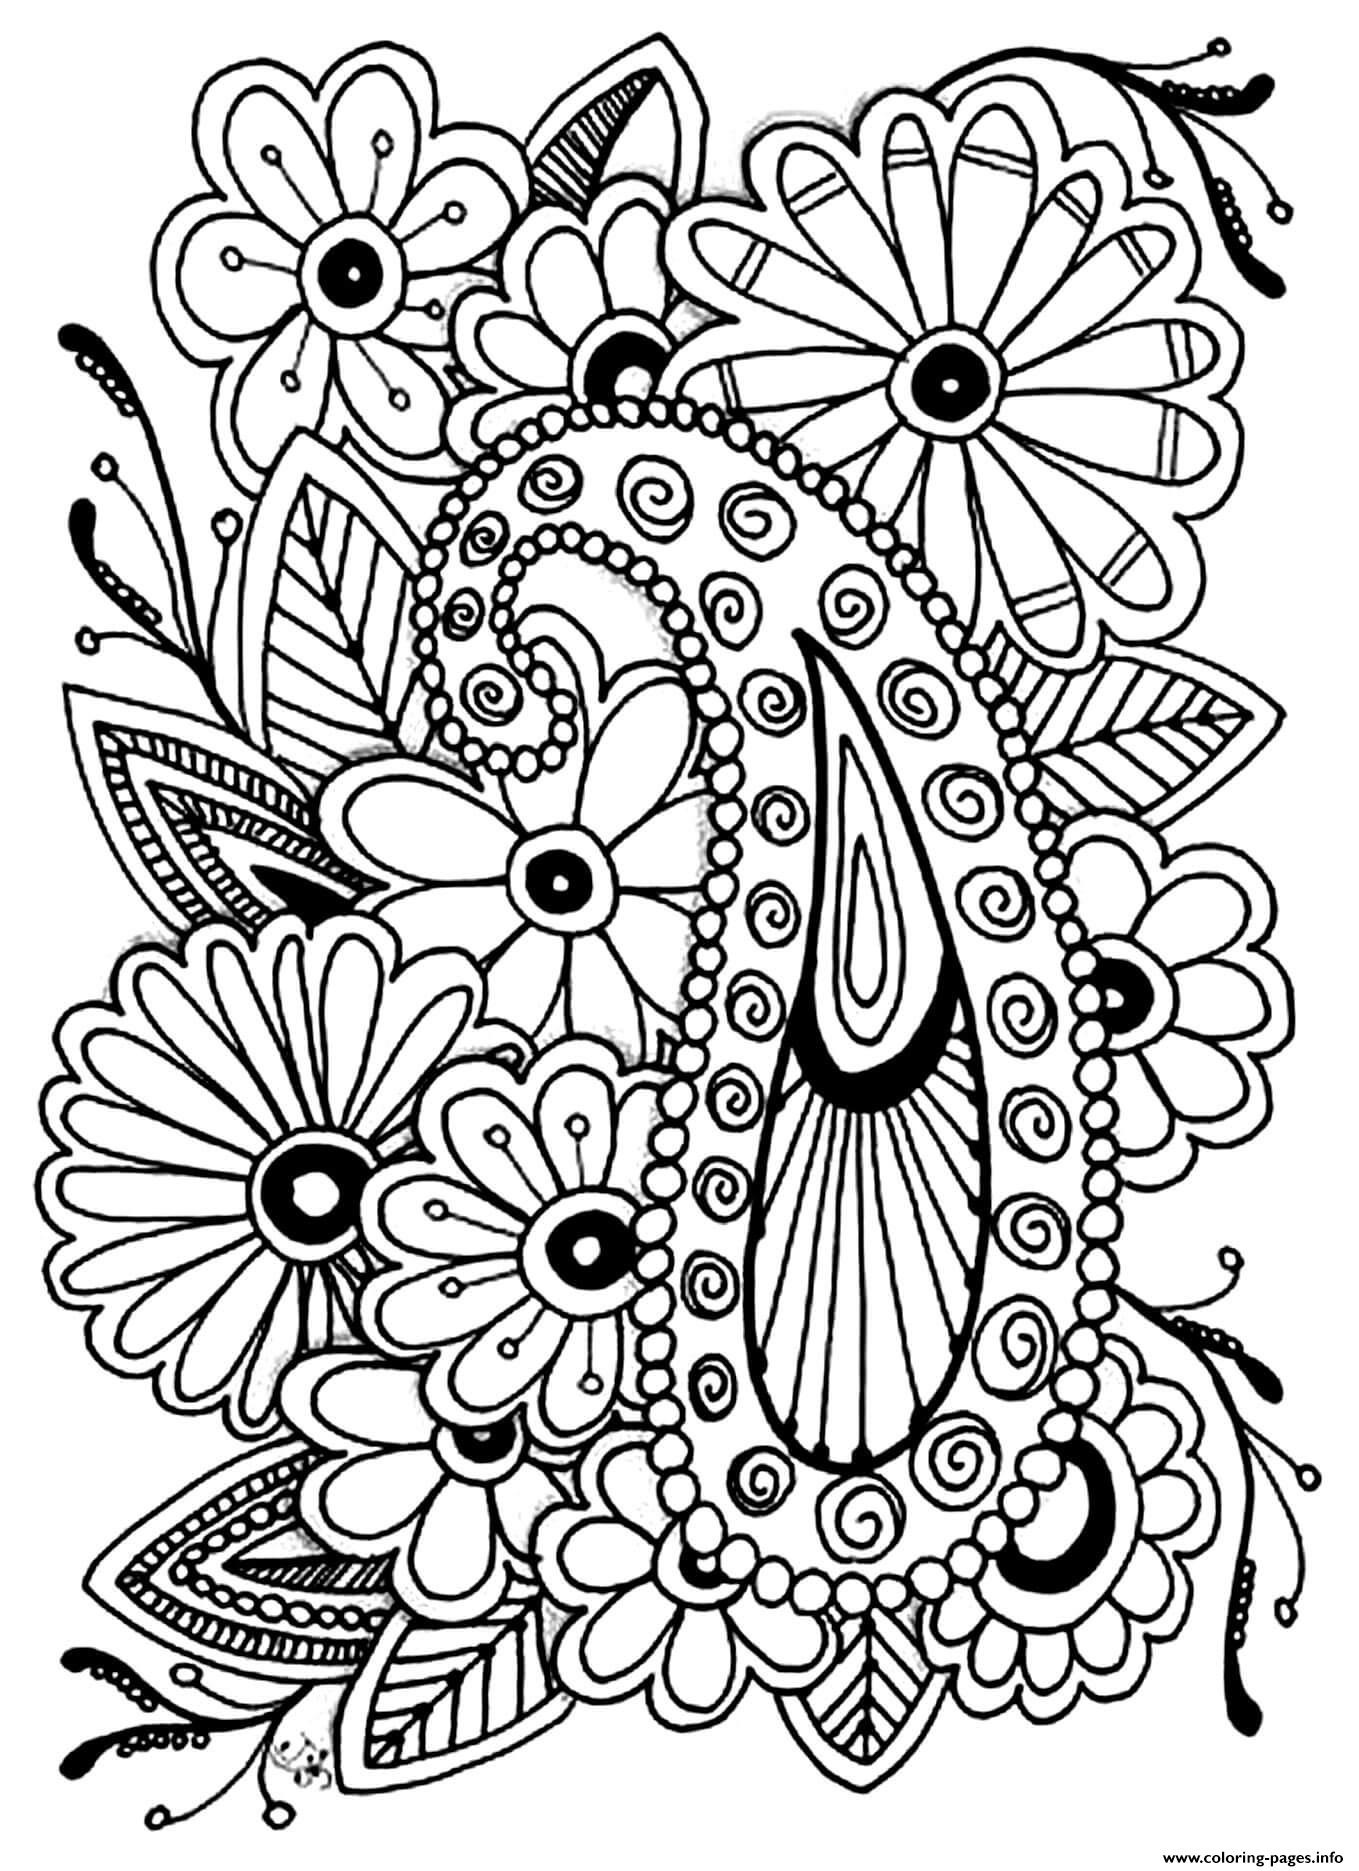 Paisley Coloring Pages Floral Paisley Coloring Page Free Printable ... | 1871x1359